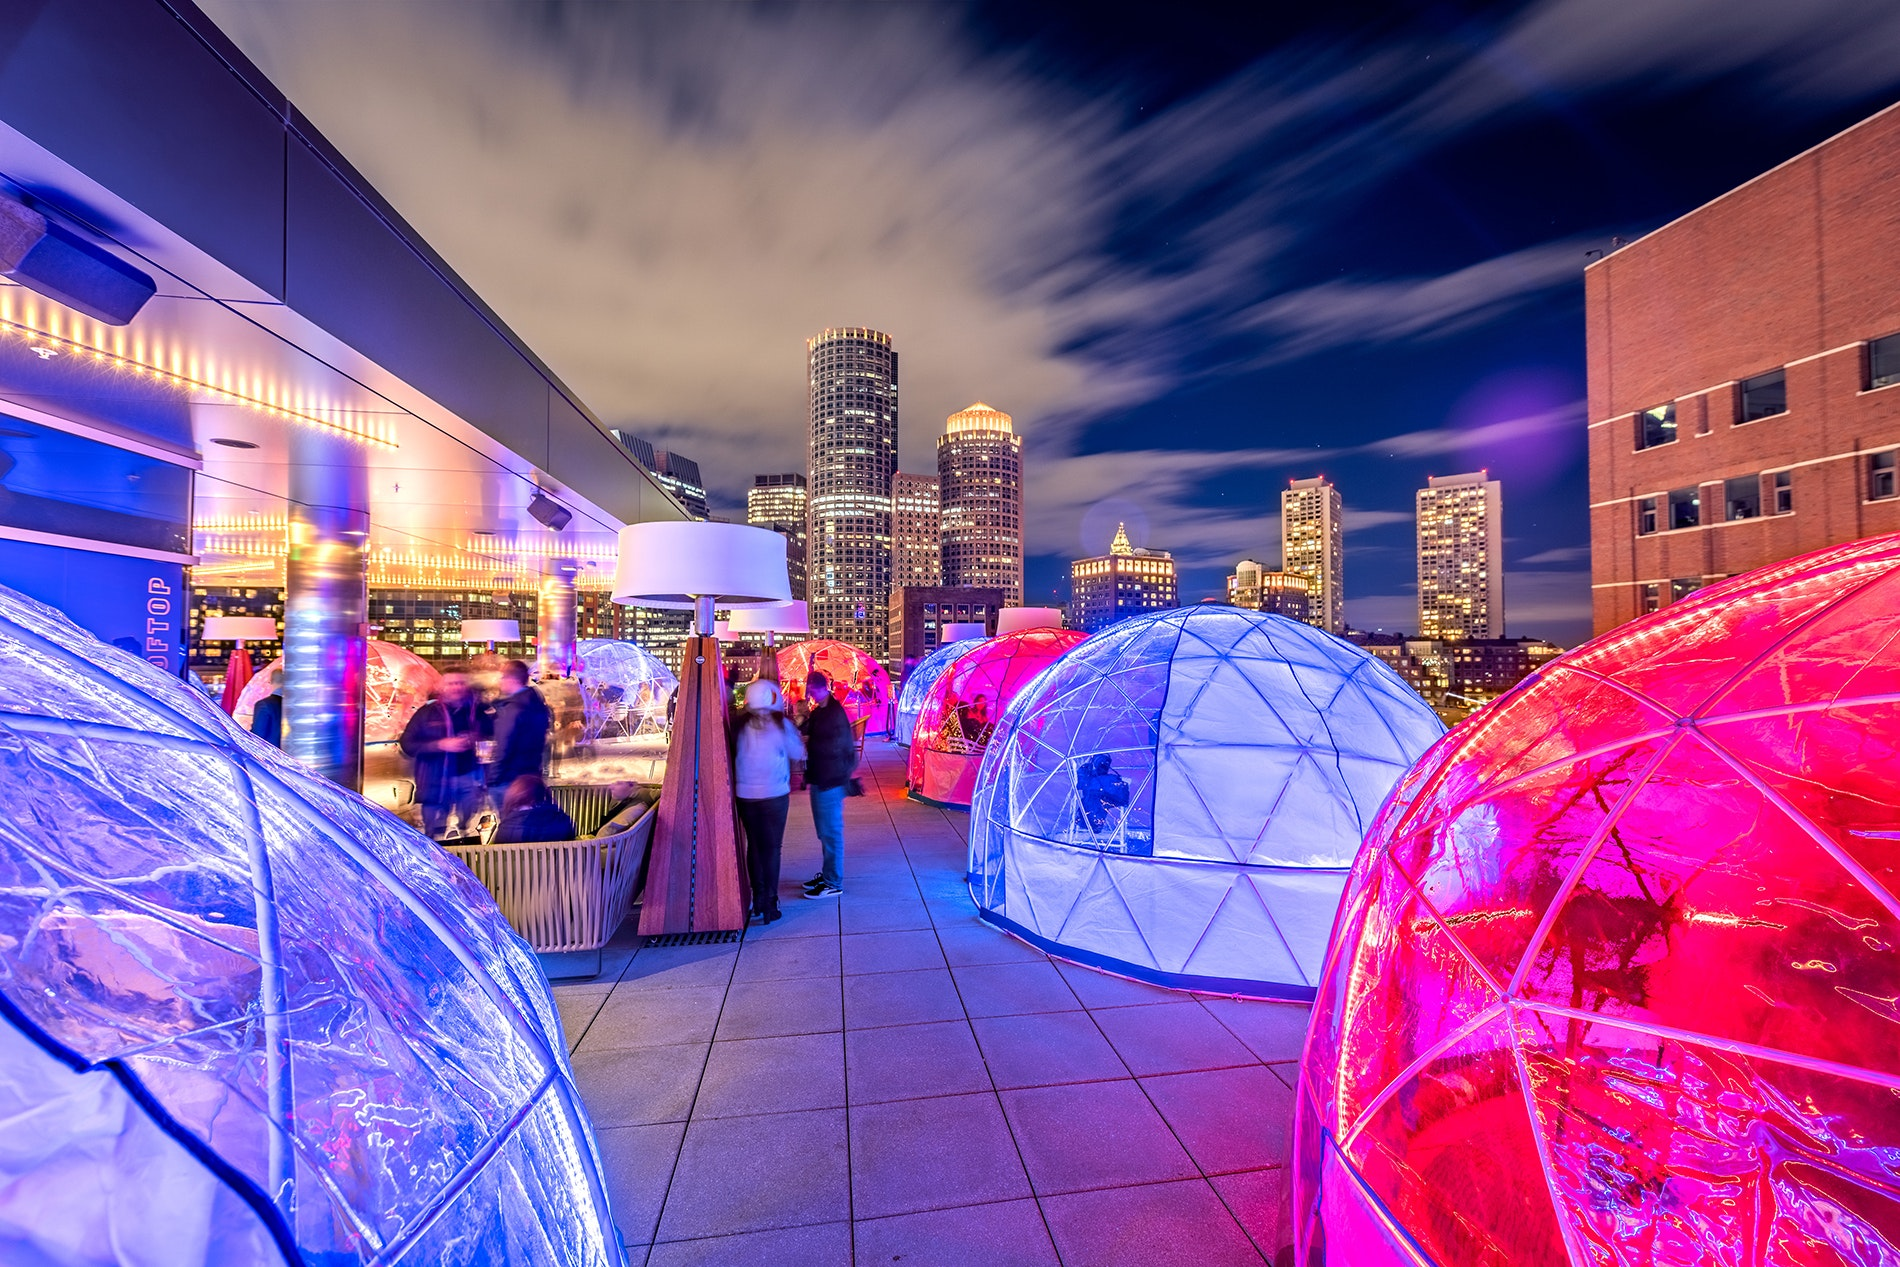 Hunker down for Boston's winter chills in a heated and illuminated igloo atop The Envoy Hotel.